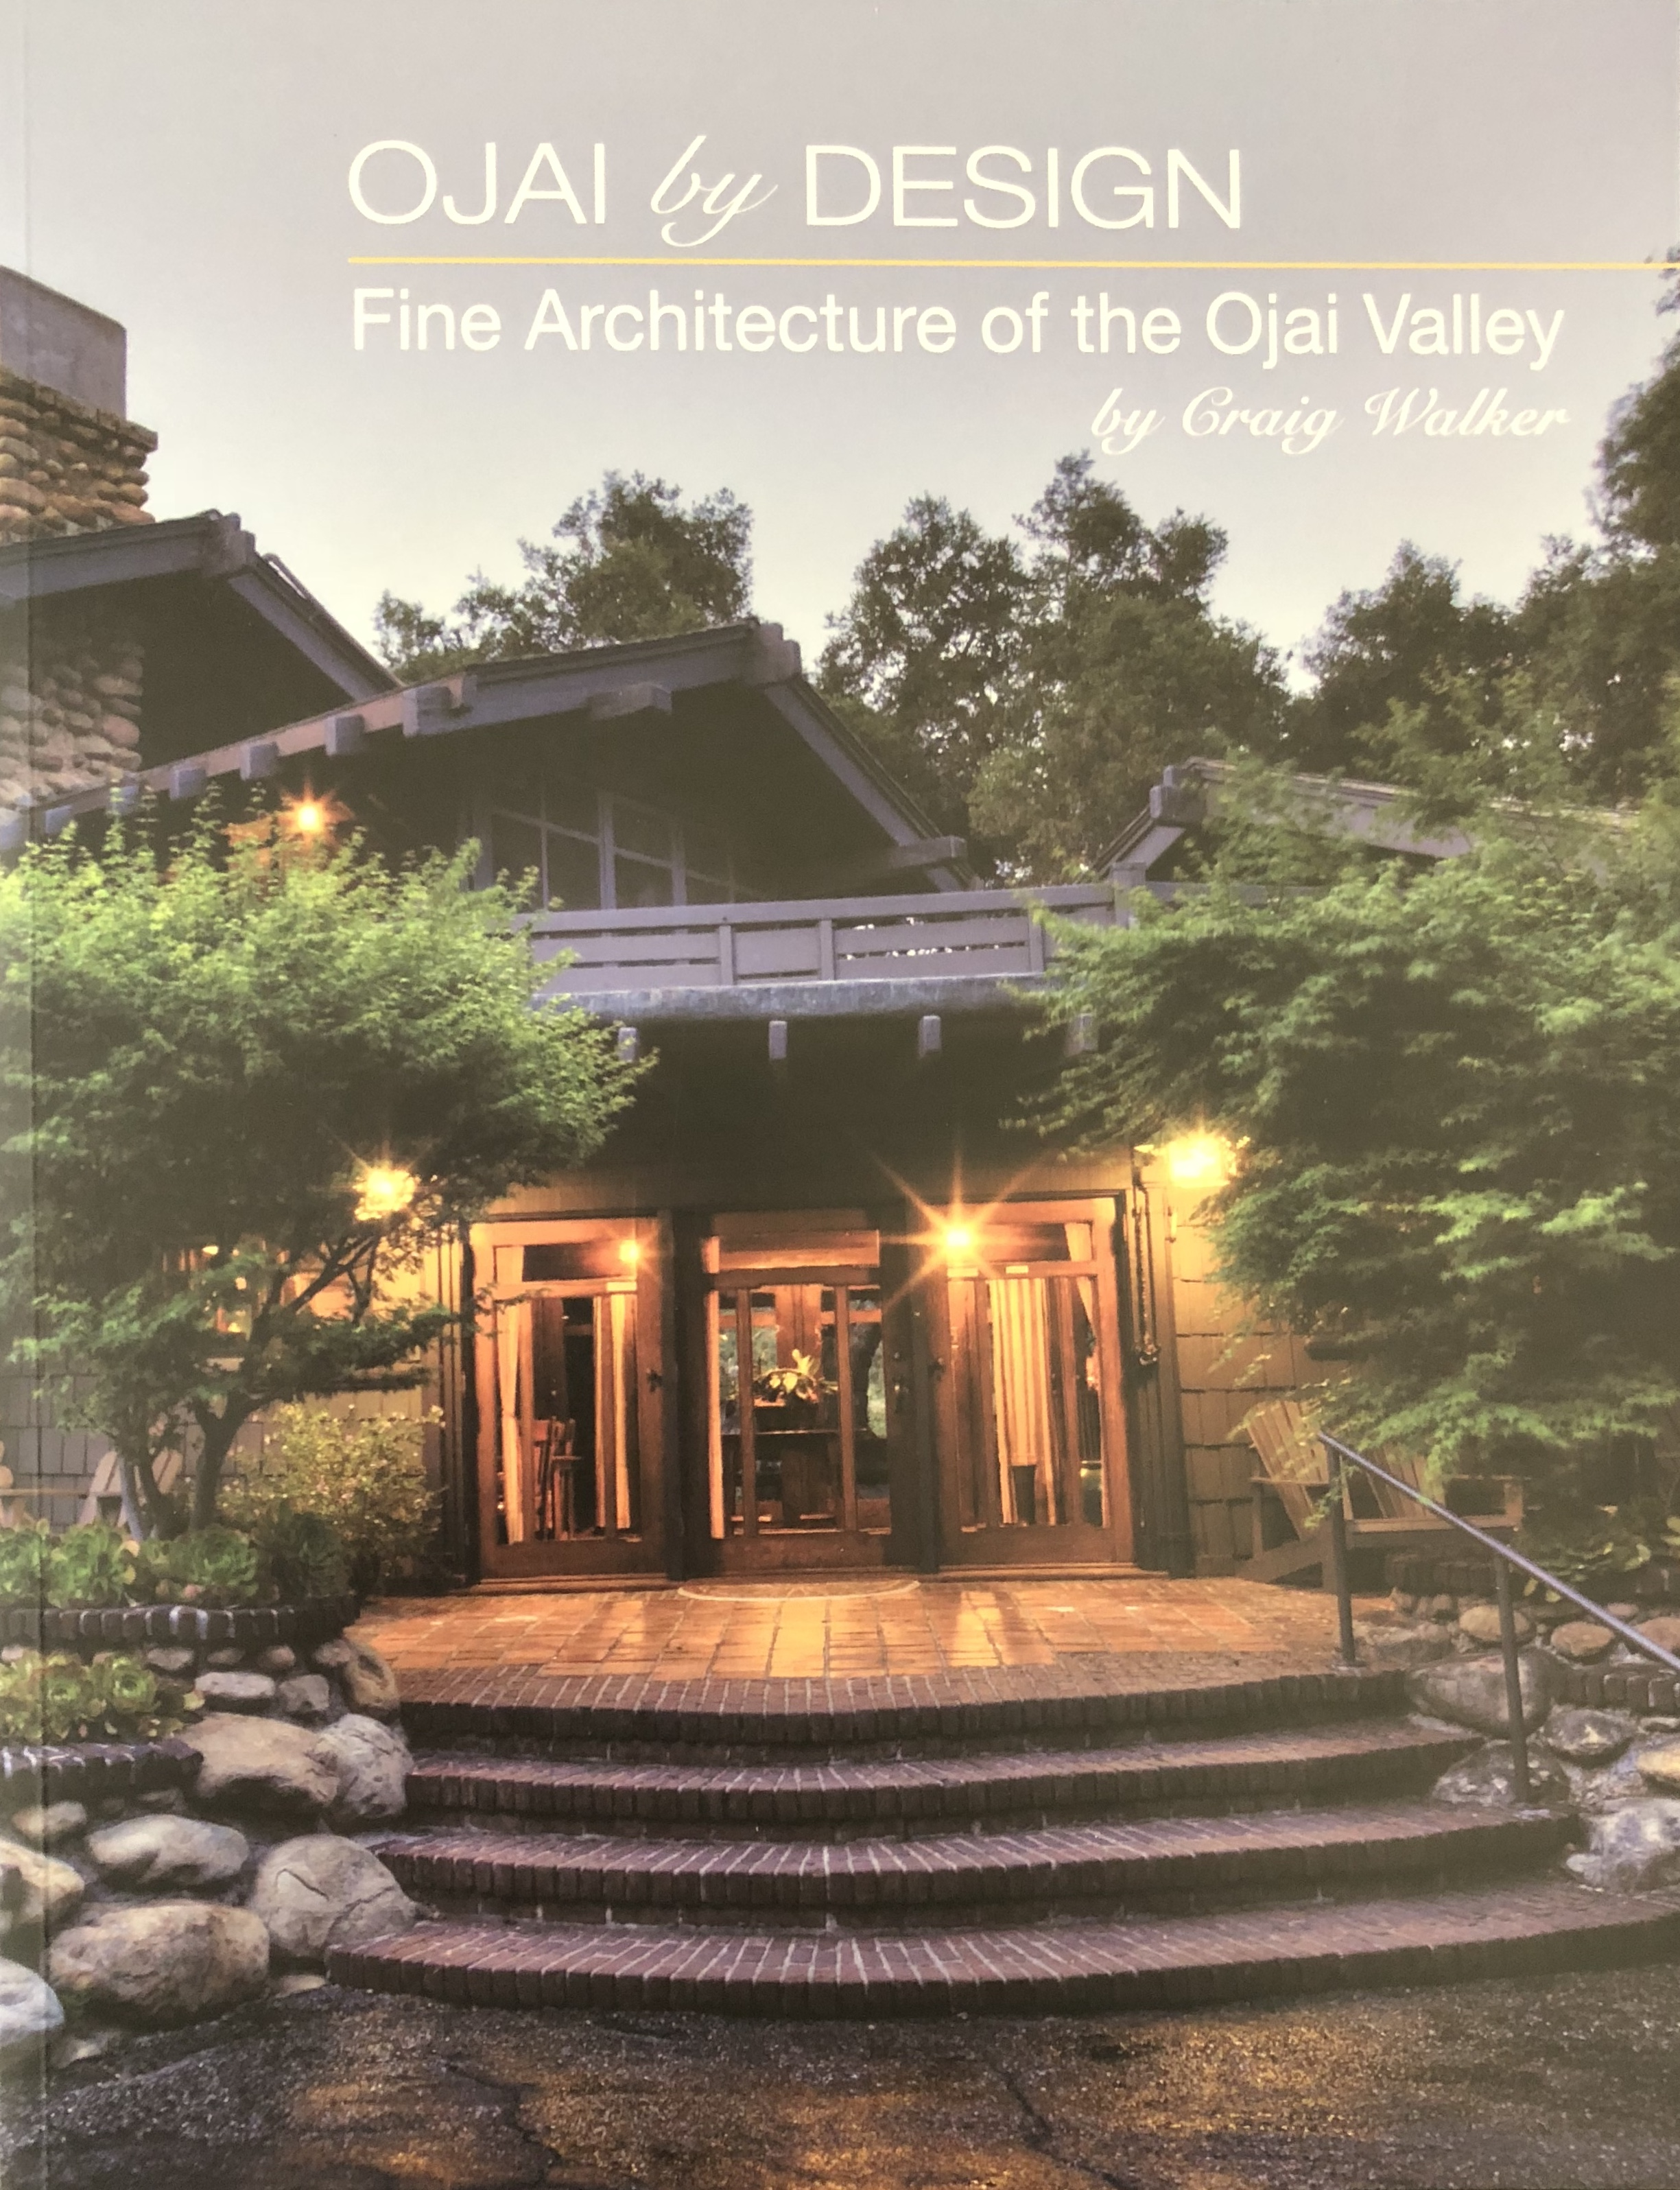 Ojai by Design Fine Architecture of the Ojai Valley, by Craig Walker